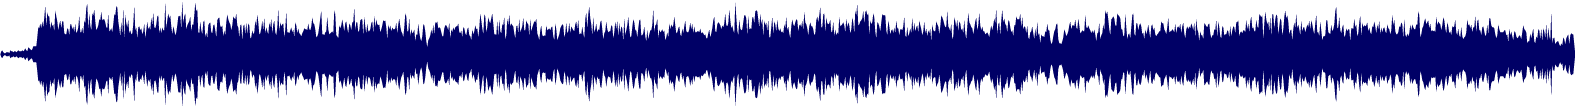 waveform of track #81883